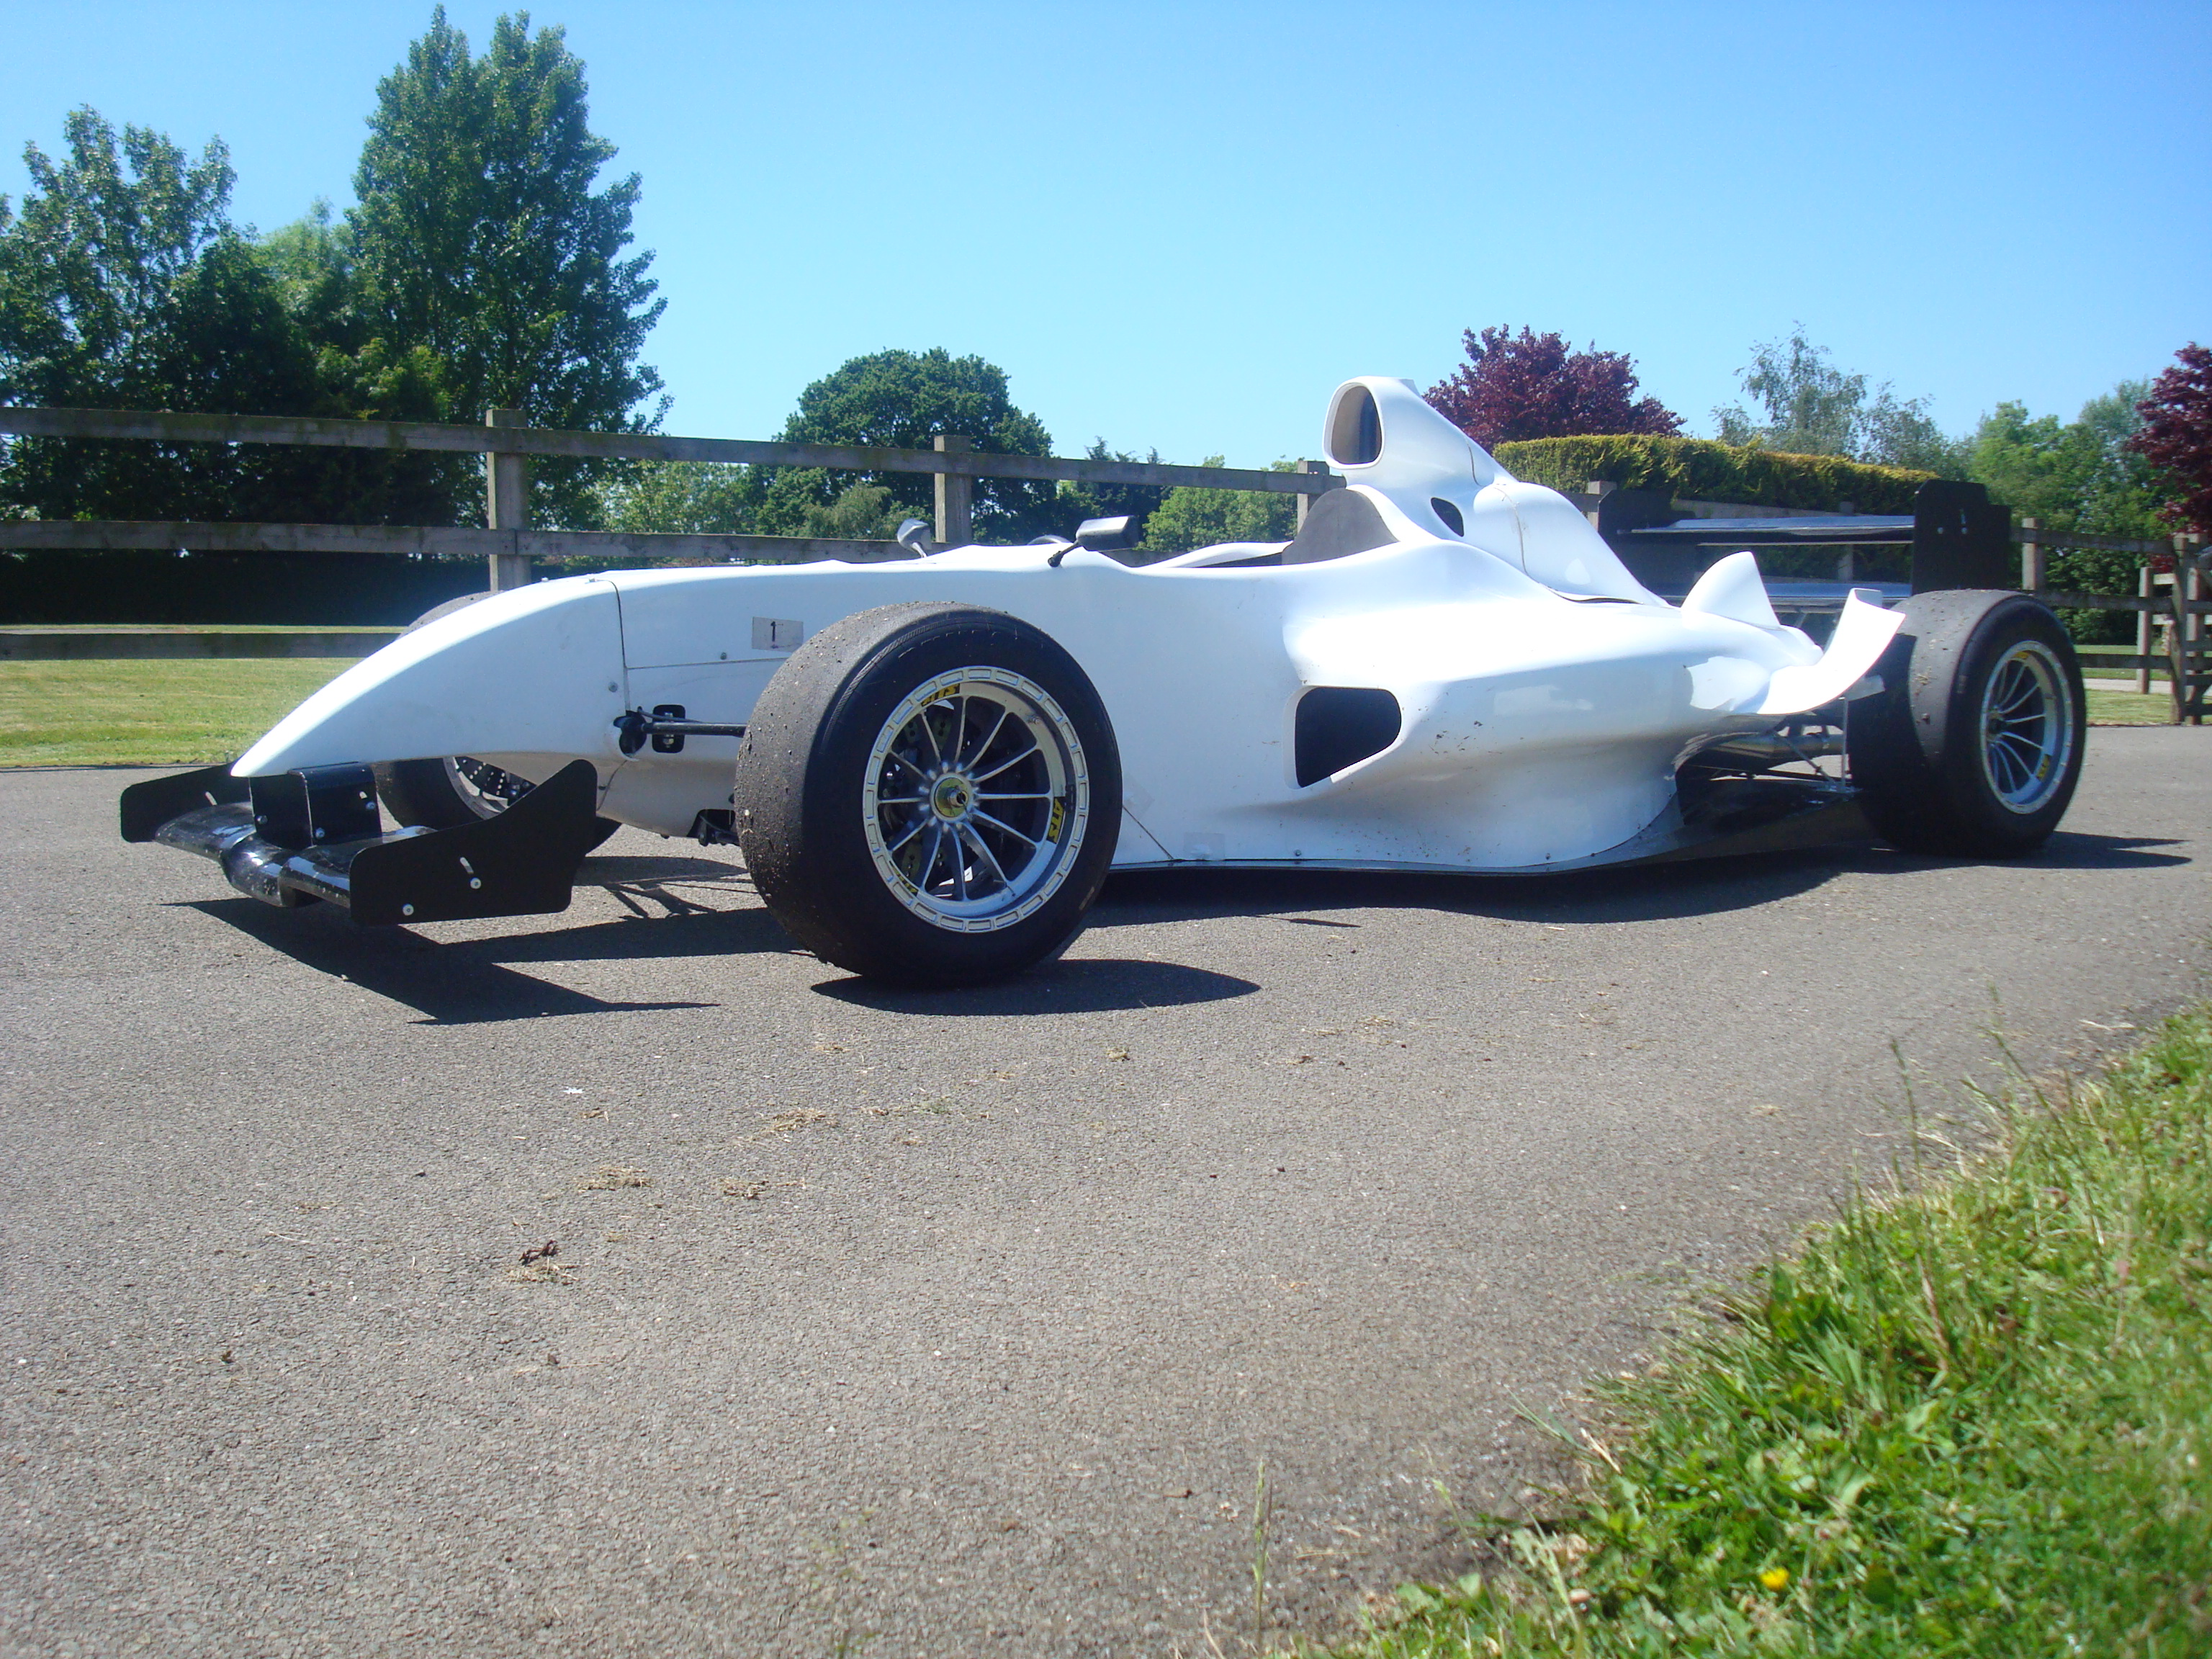 Single Seater Race Cars For Sale South Africa